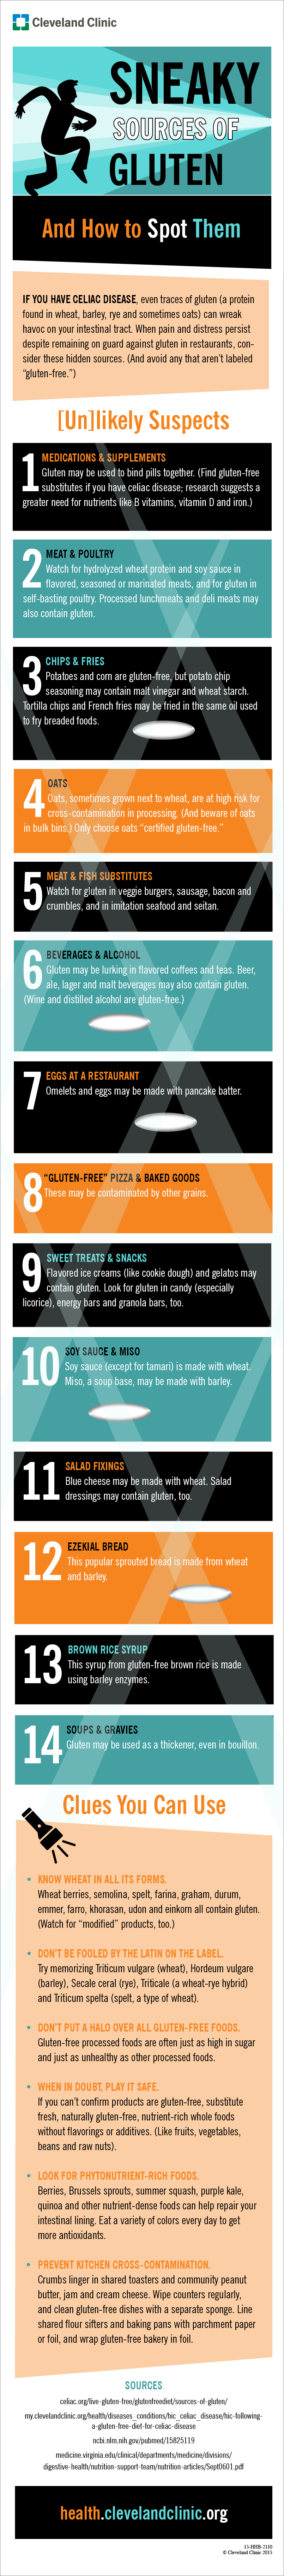 Sneaky Sources of Gluten (Infographic)